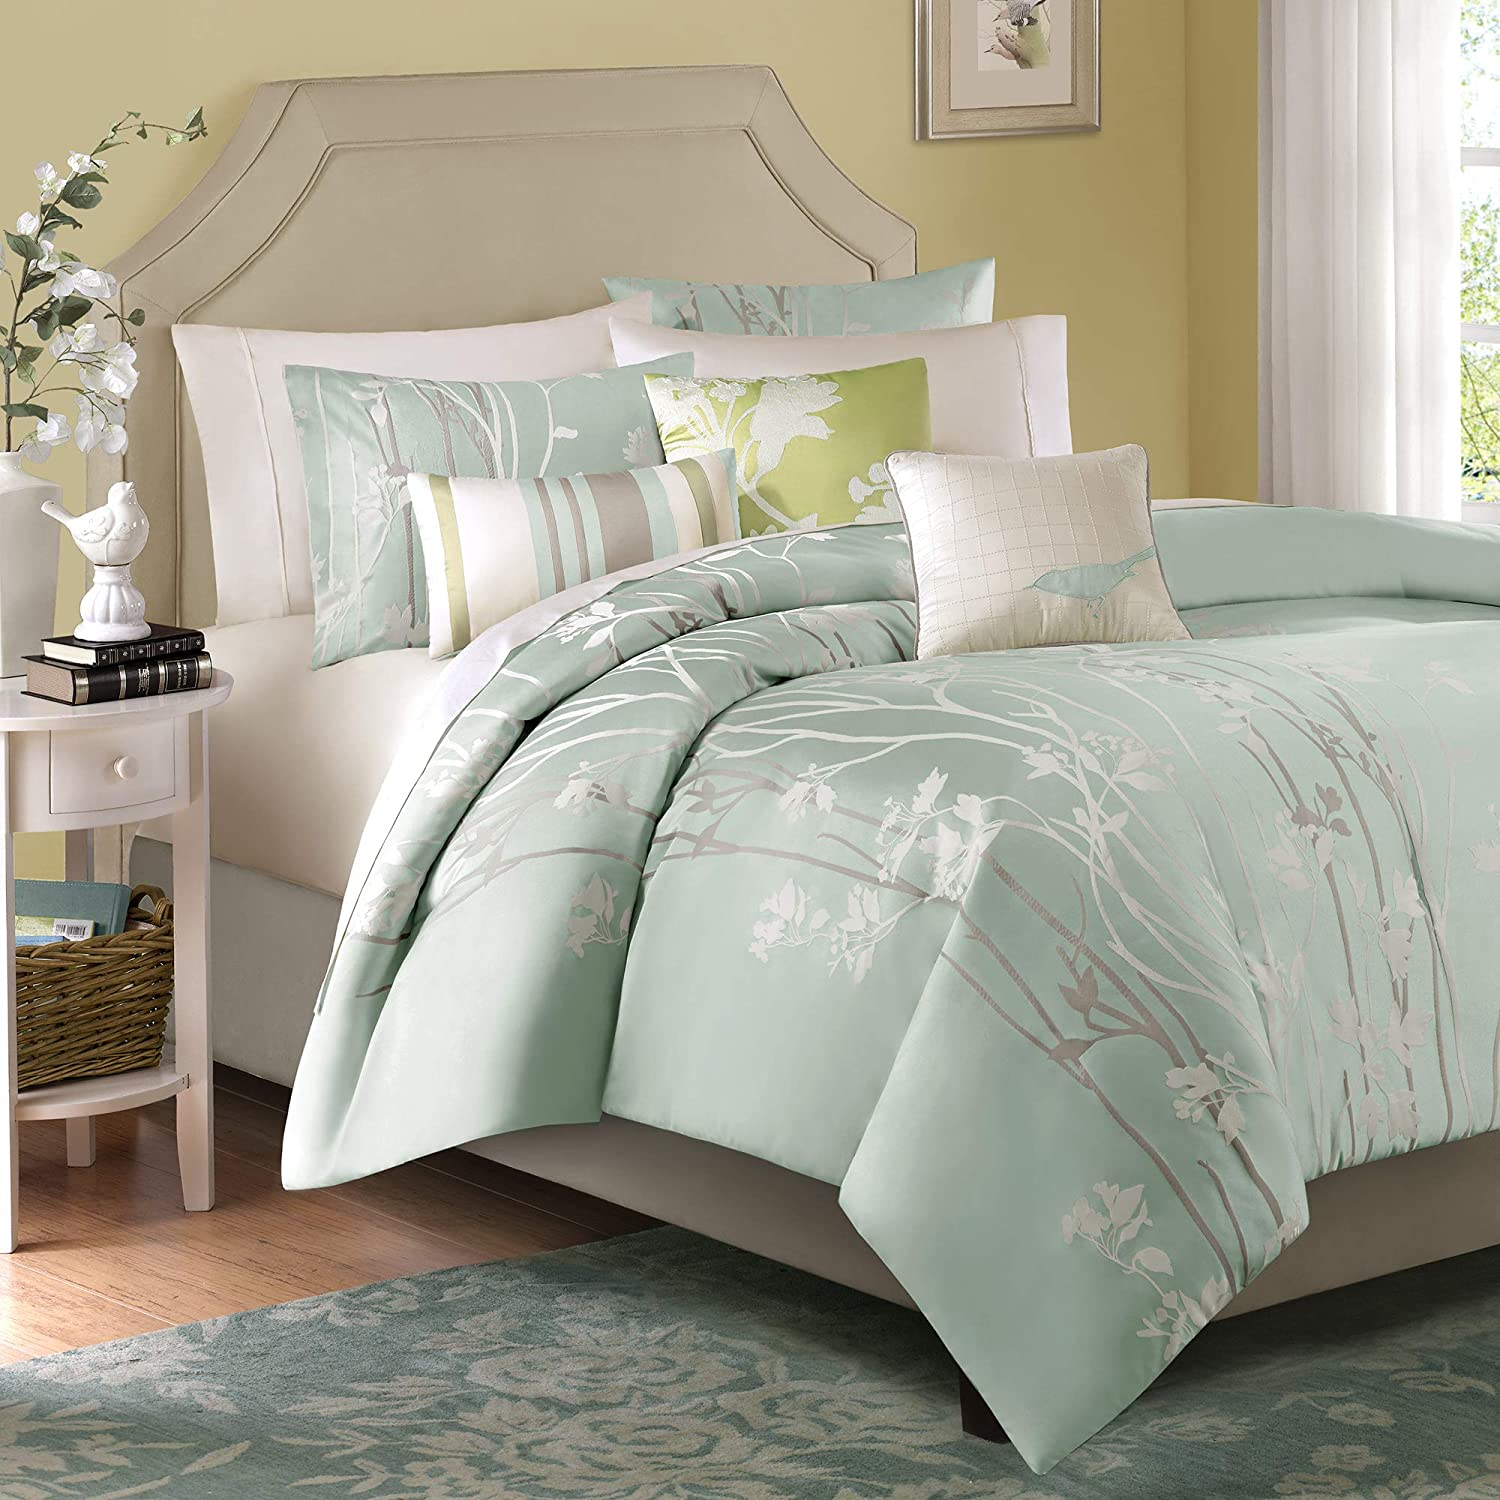 Madison Park Athena King Size Bed Comforter - Bag A Set Excellent Opening large release sale in S